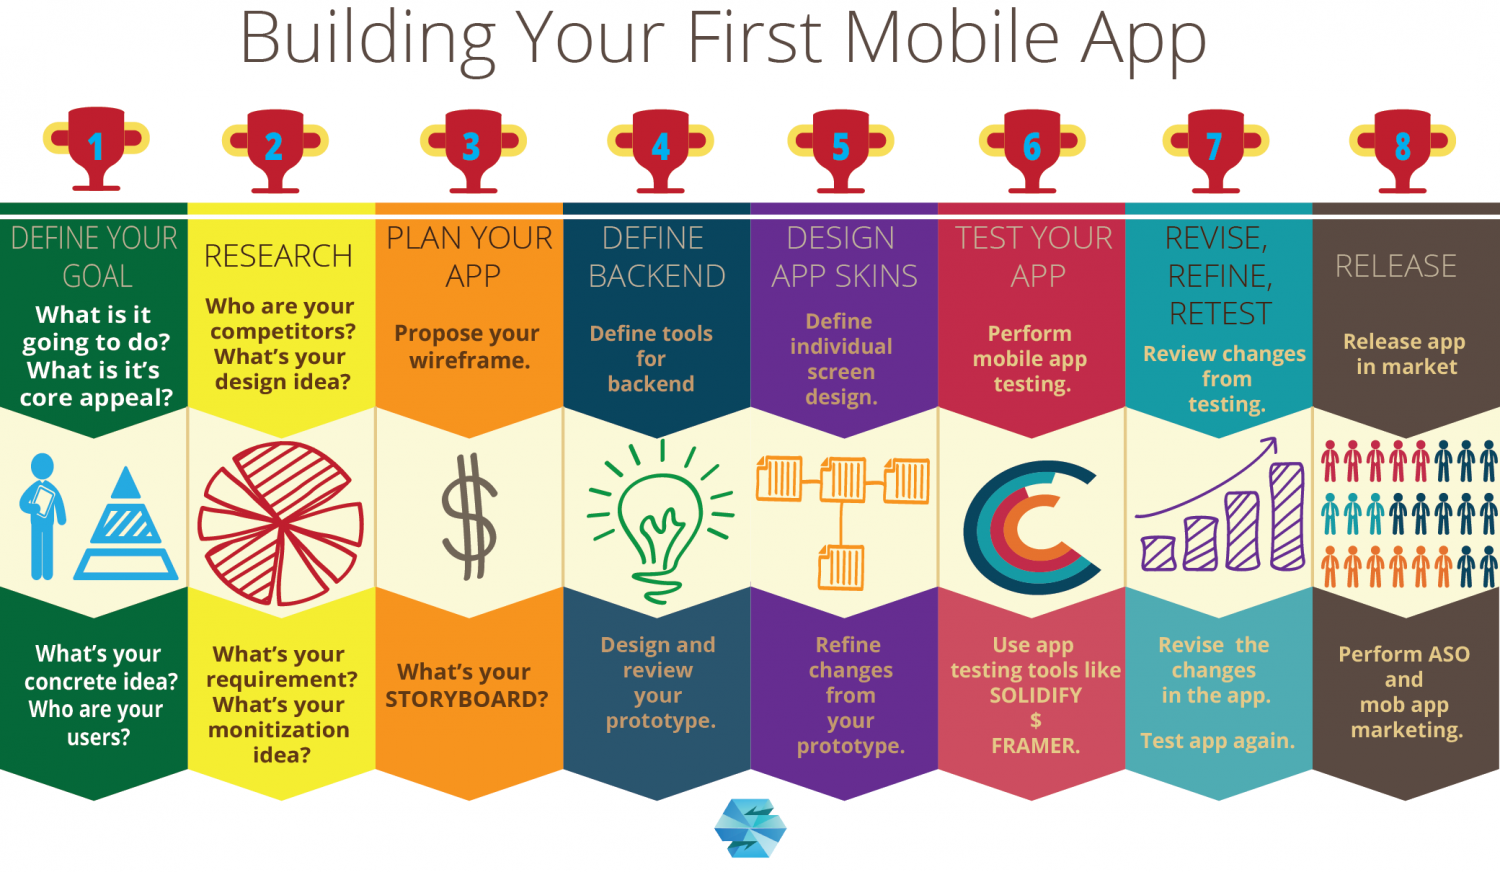 Steps To Build Your First Mobile App Infographic